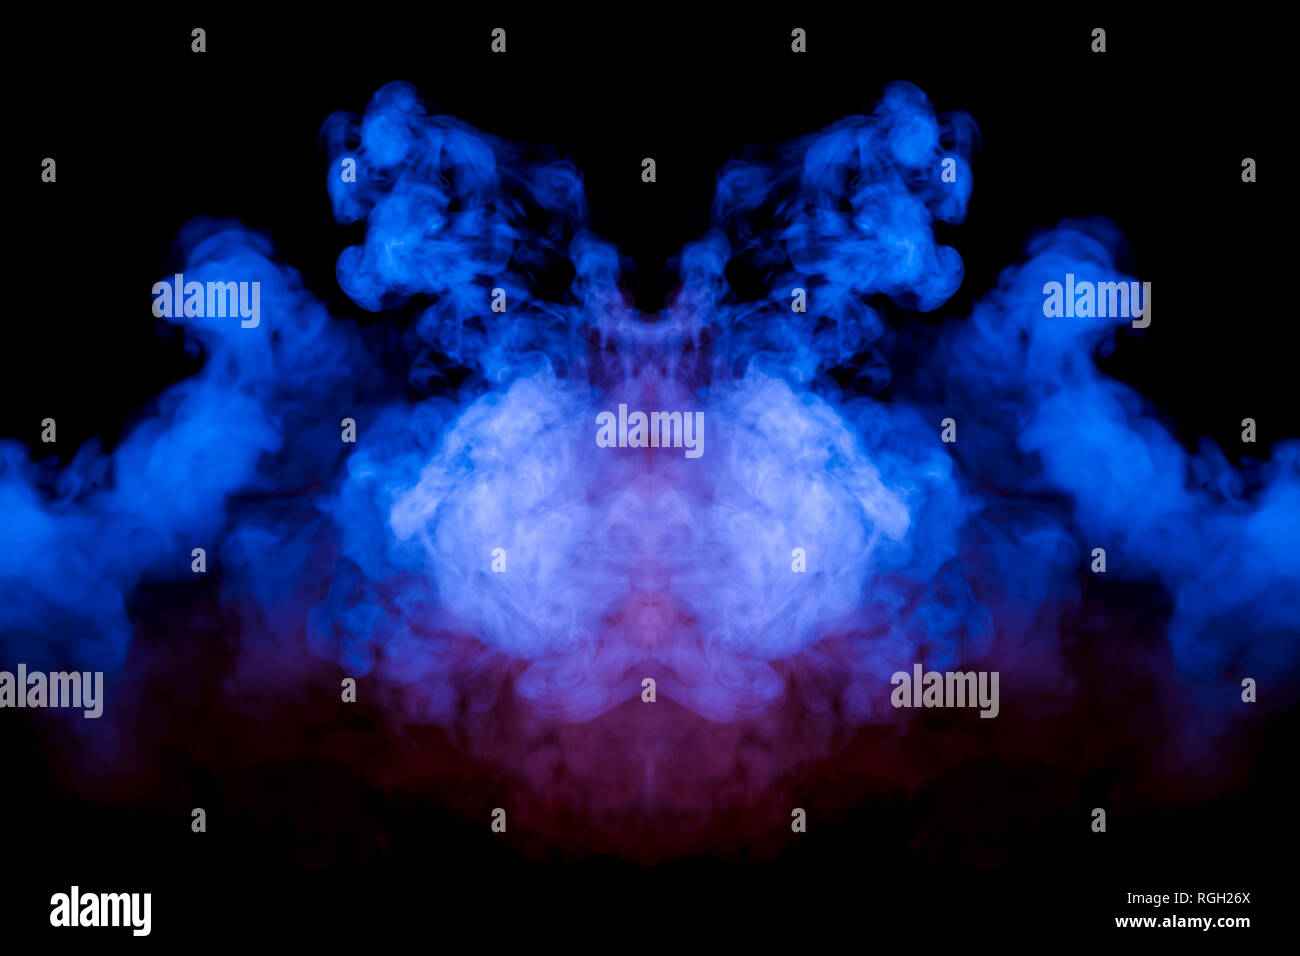 Multicolored curling smoke rising upwards in a pillar, pink blue vapor twisting into abstract shapes and patterns on a black background, repeating the - Stock Image